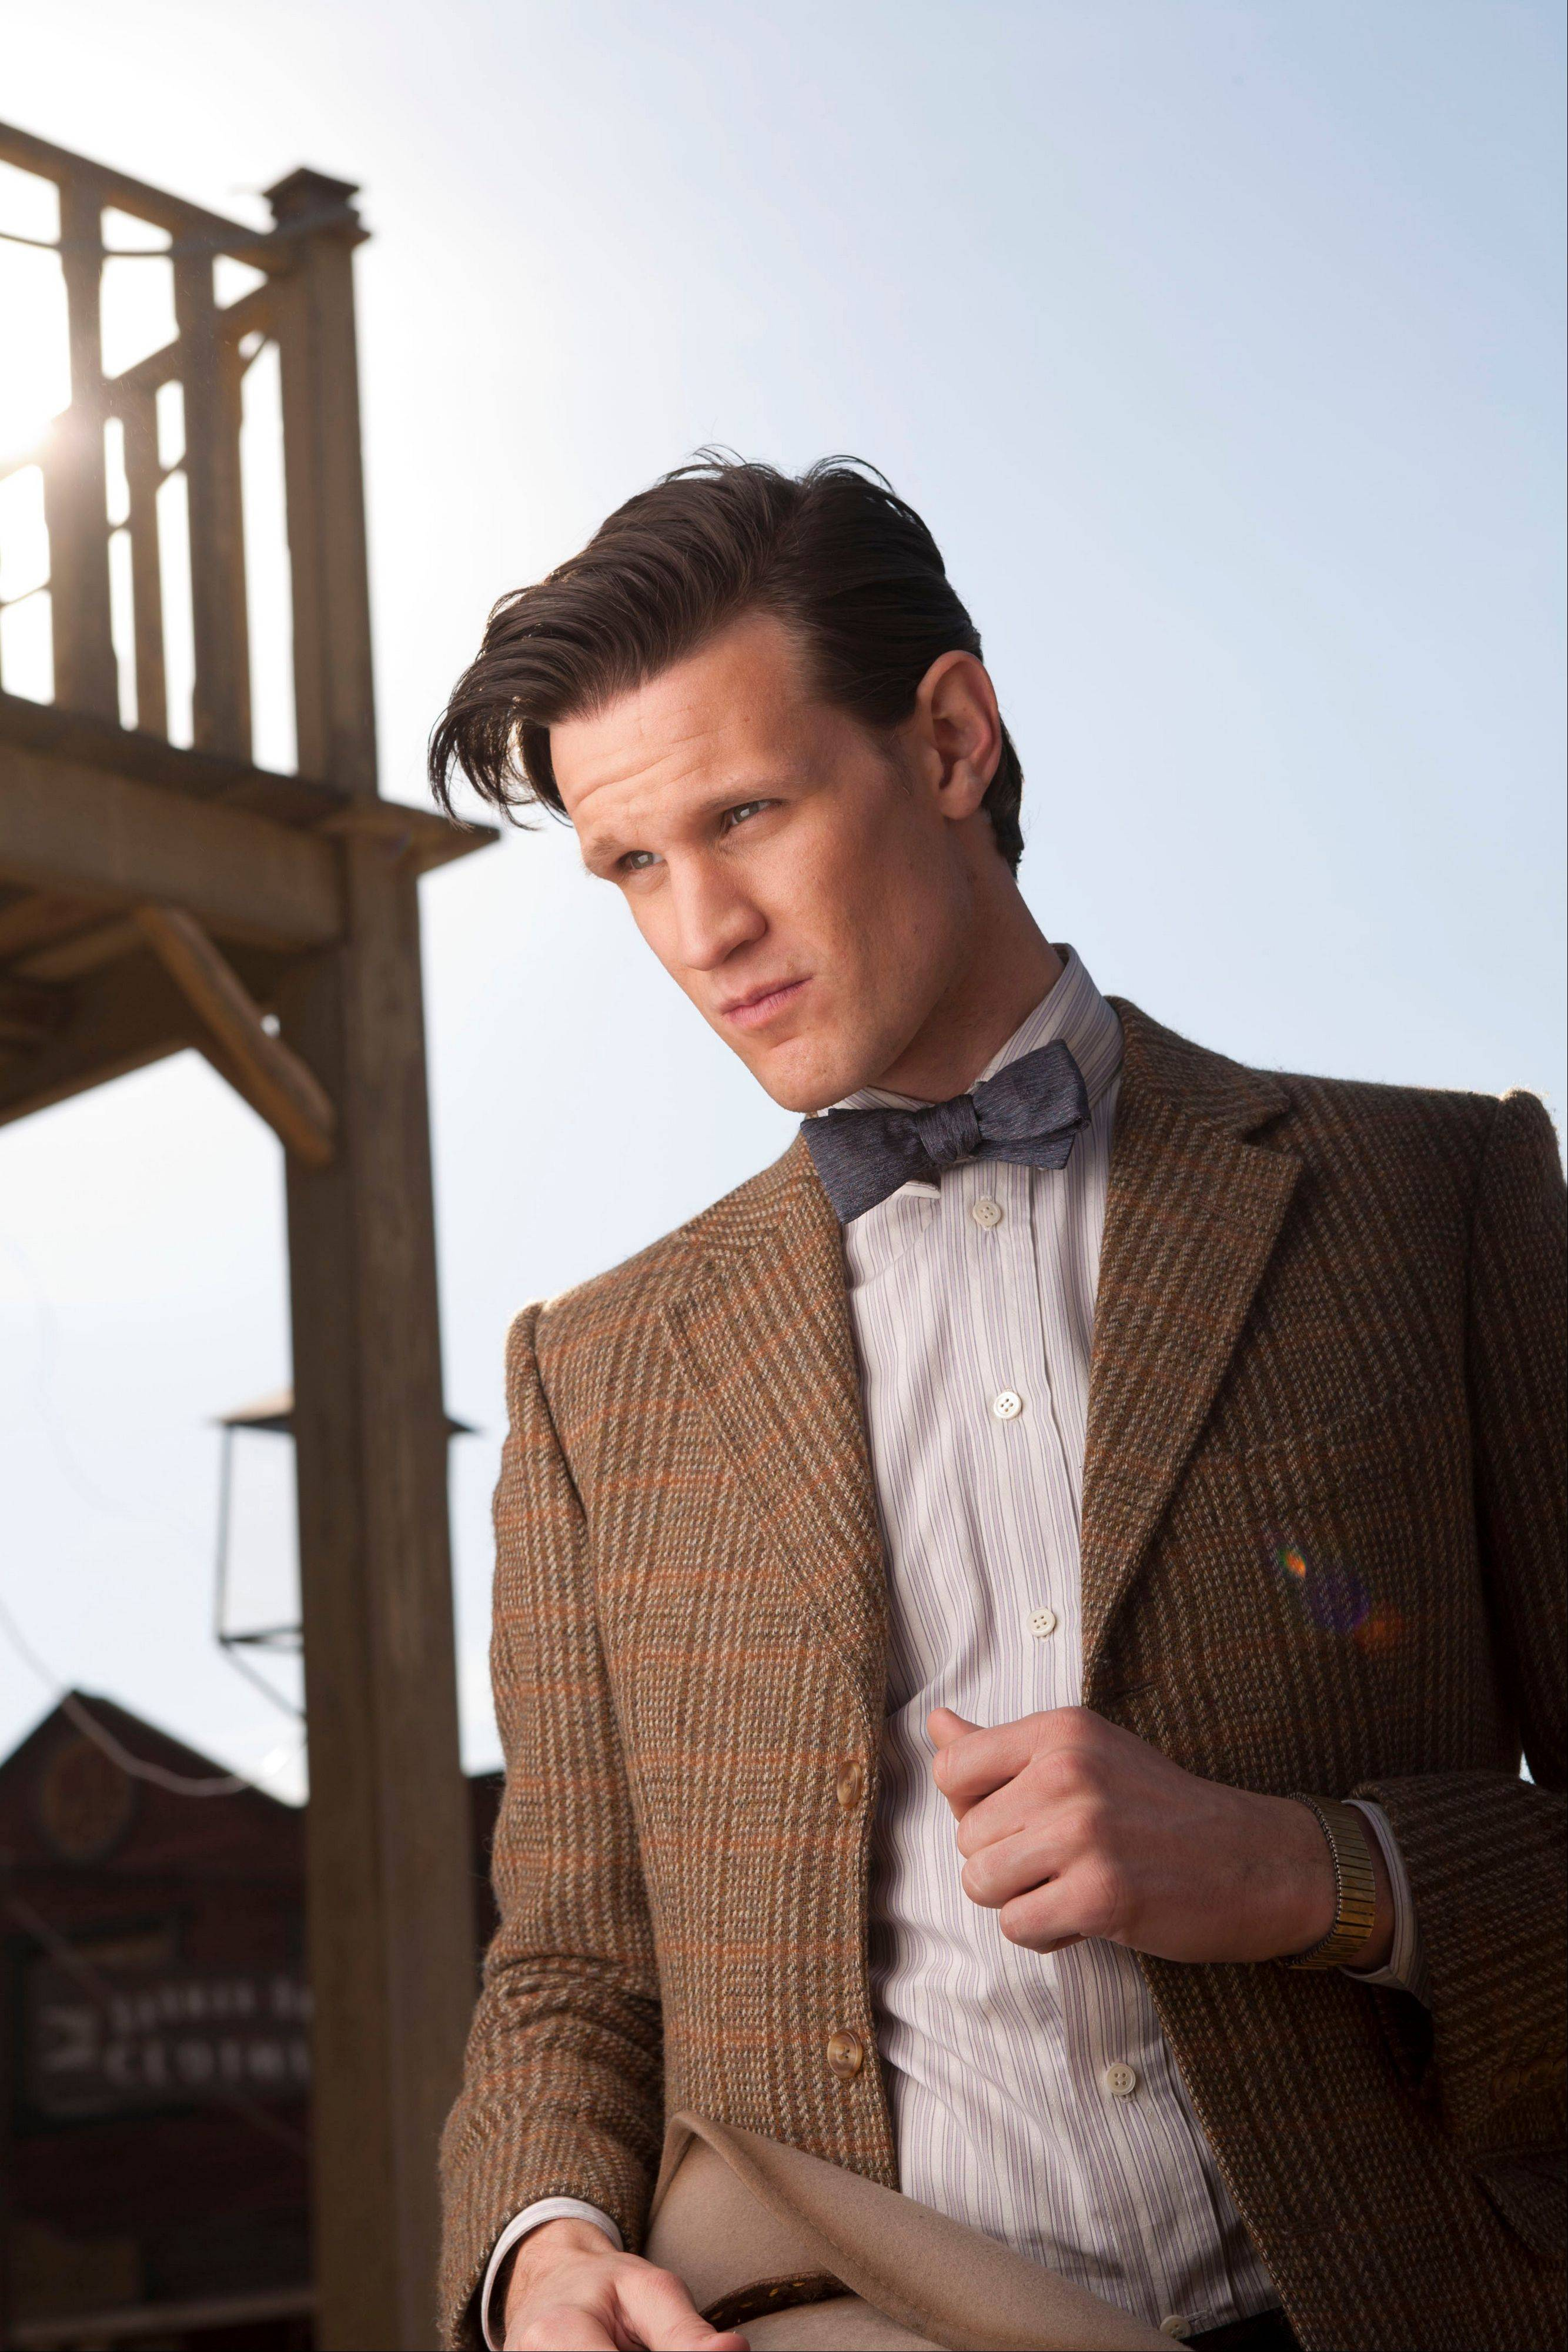 Matt Smith as The Eleventh Doctor in �Doctor Who,� which is turning 50 this weekend. The BBC is throwing a broadcasting blowout for the sci-fi show, which began with little fanfare and few expectations on Nov. 23, 1963 but is now one of its biggest hits and major exports.